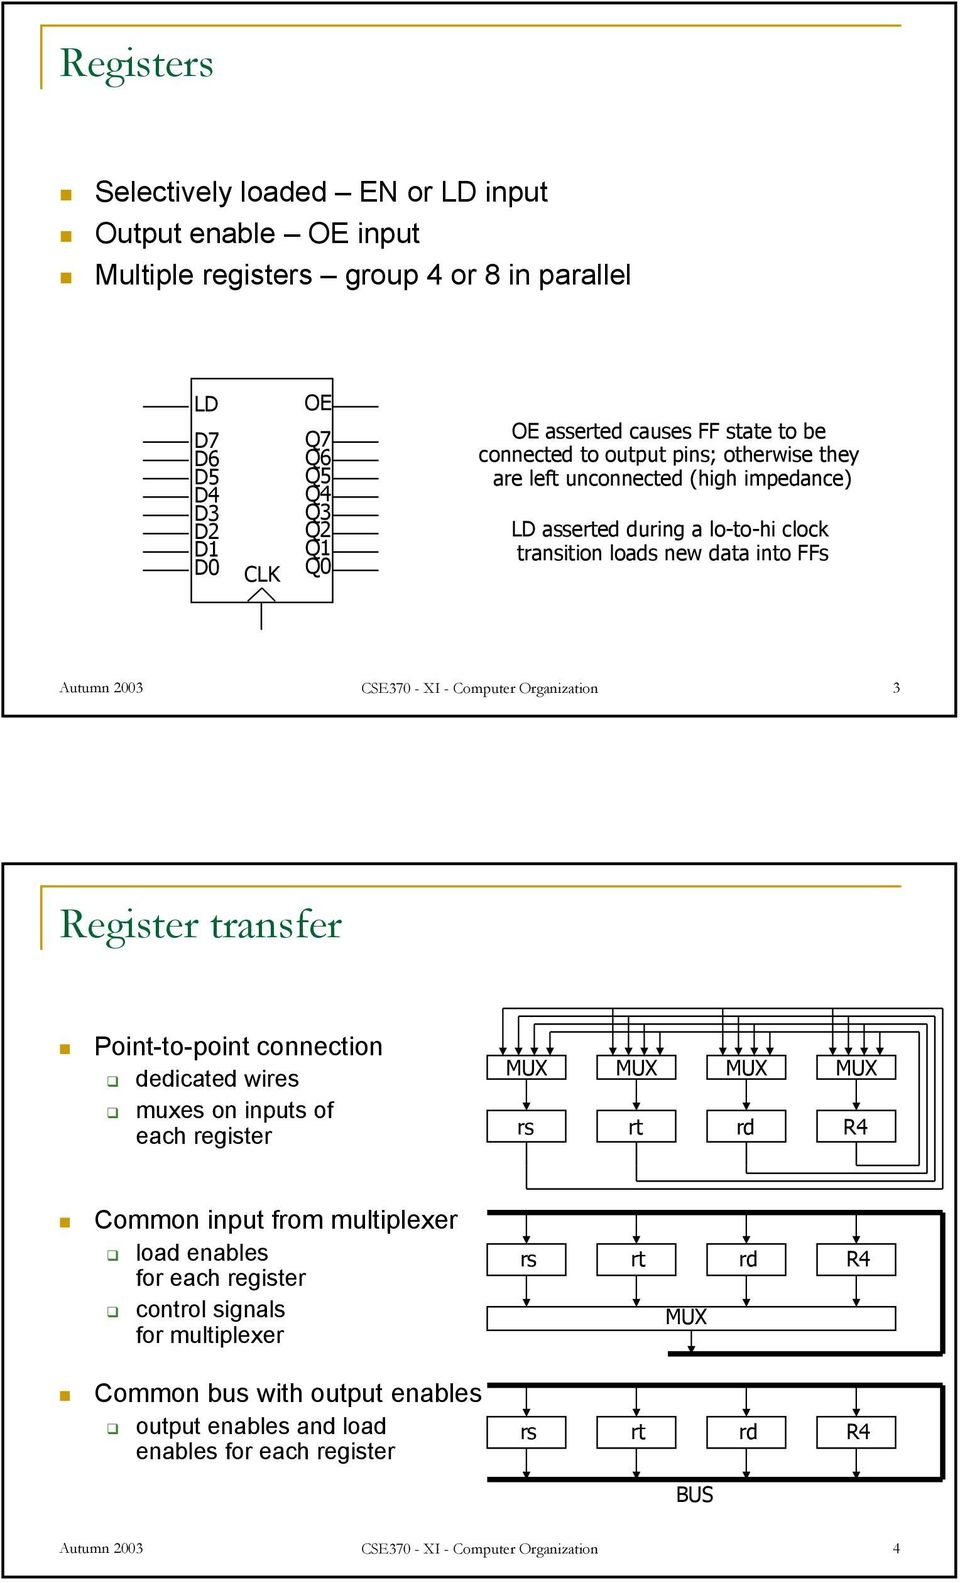 Computer Organization 3 Register transfer Point-to-point connection dedicated wires muxes on inputs of each register MUX rs MUX rt MUX rd MUX R4 Common input from multiplexer load enables for